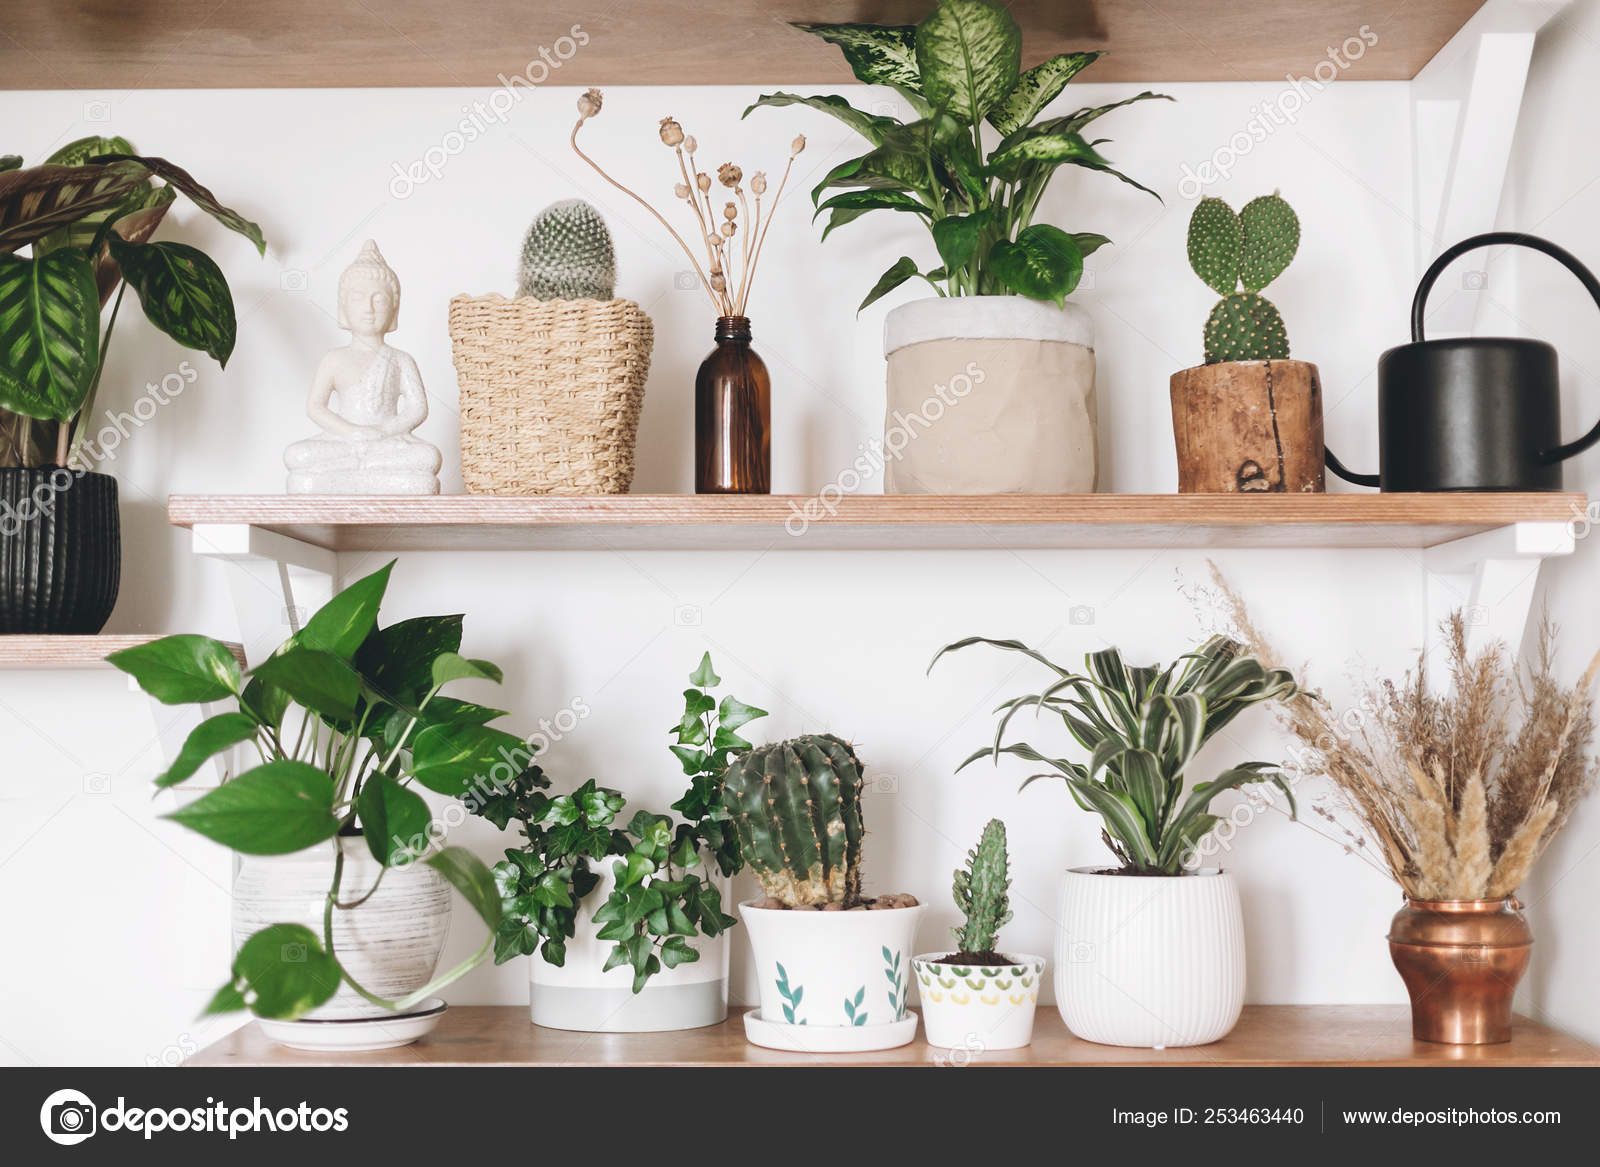 Stylish Wooden Shelves With Green Plants, Black Watering Can, Wi